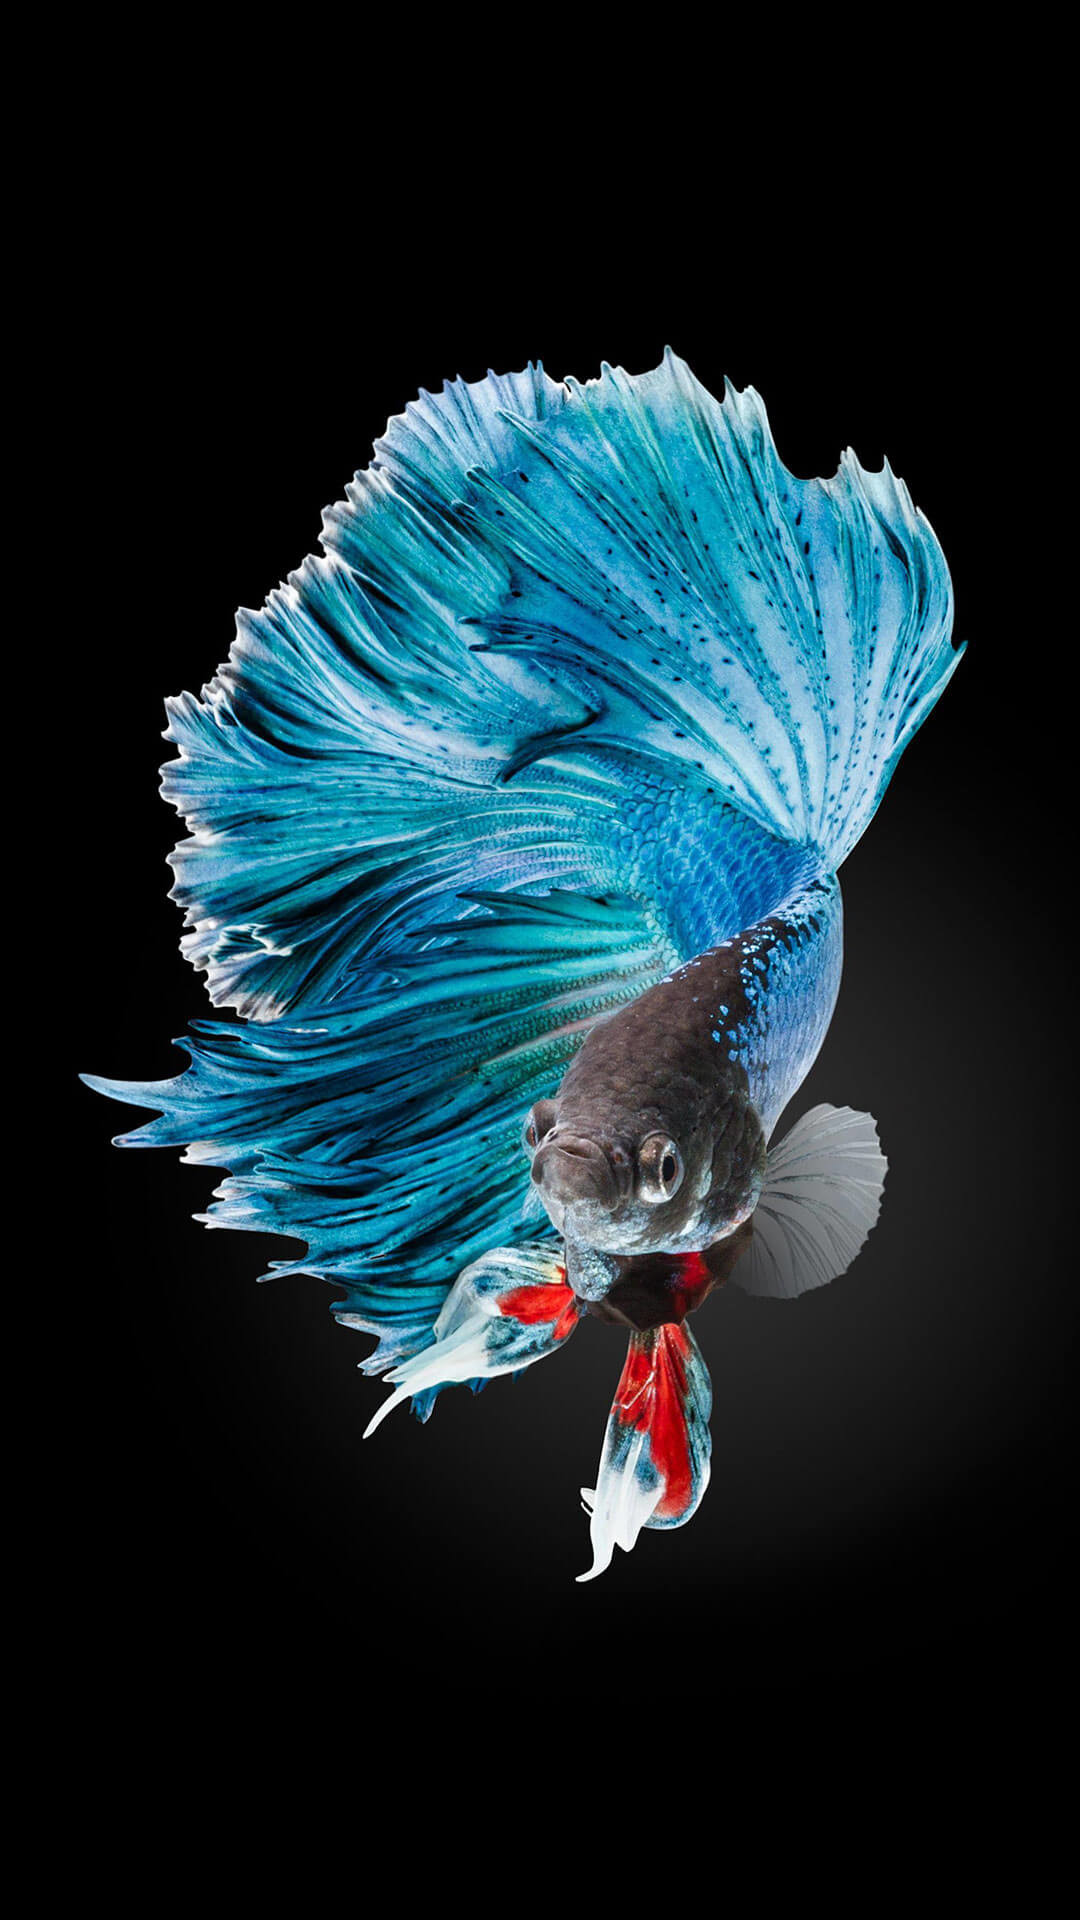 1080x1920 Betta Fish Images iPhone 6 And iPhone 6s.